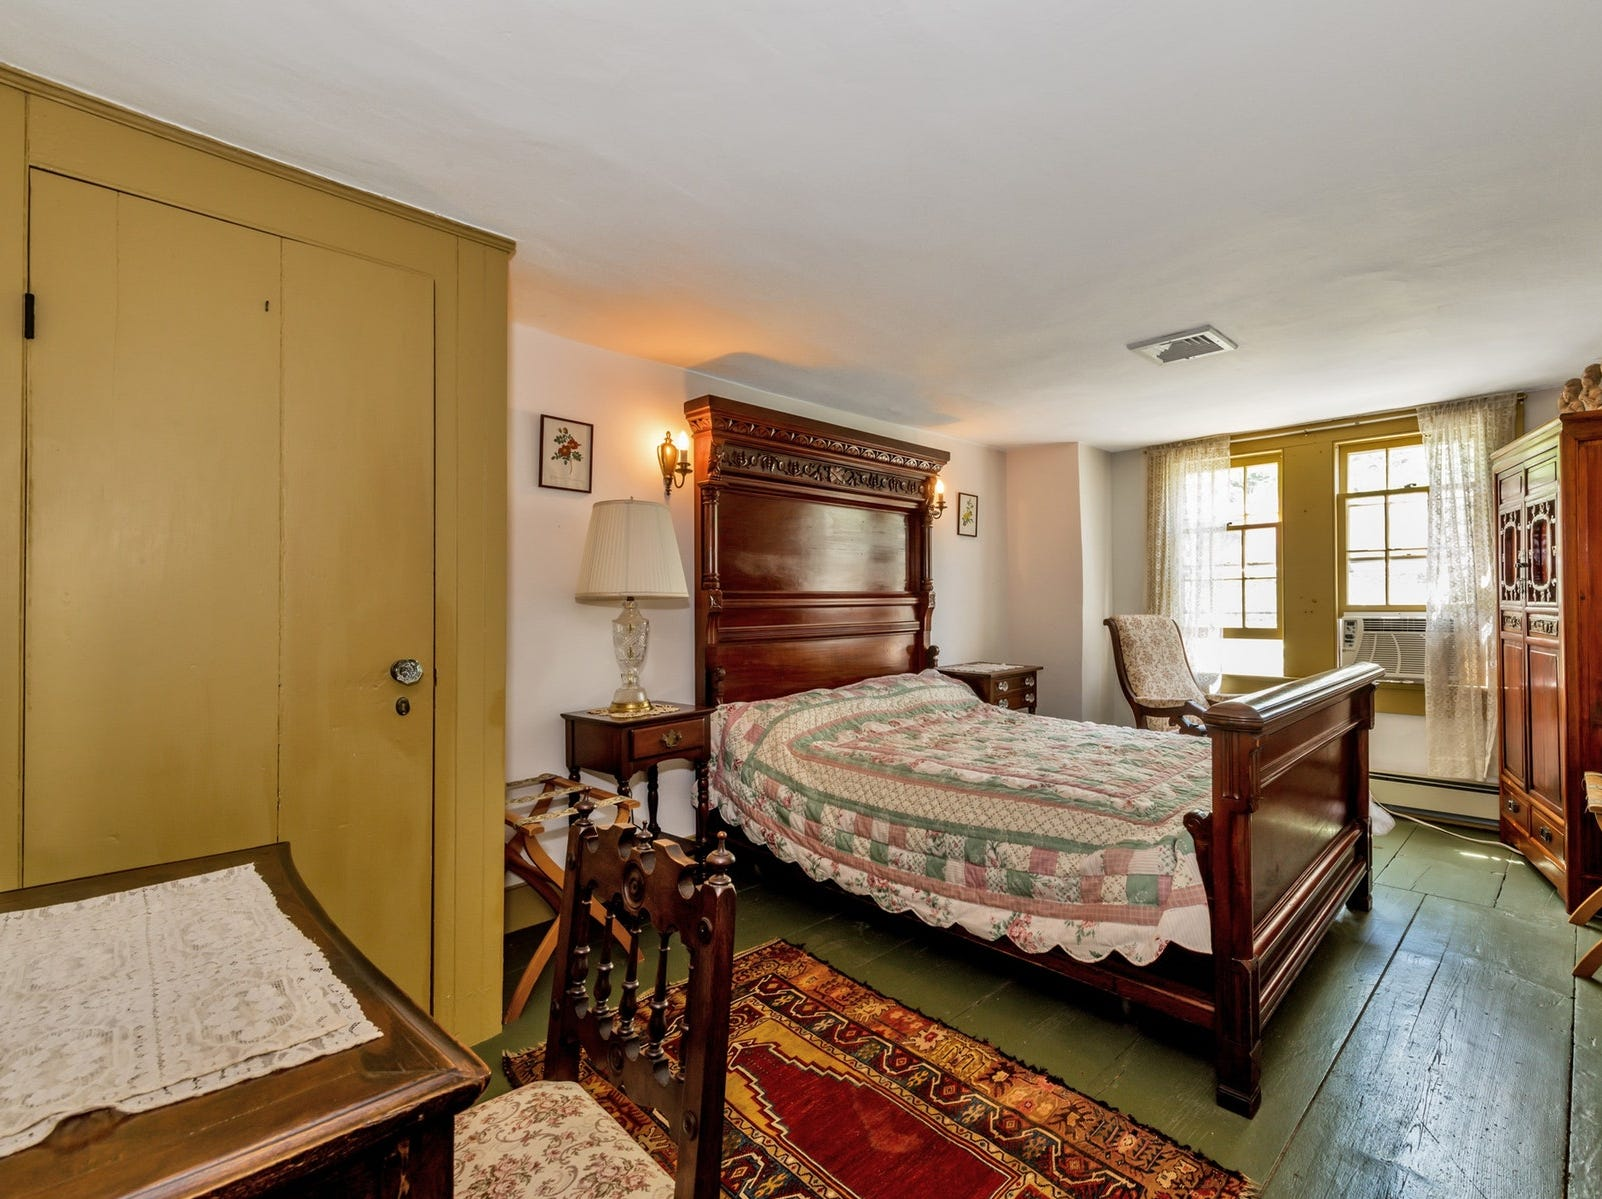 There are original details including hand-hewn beams and wide-plank floors.